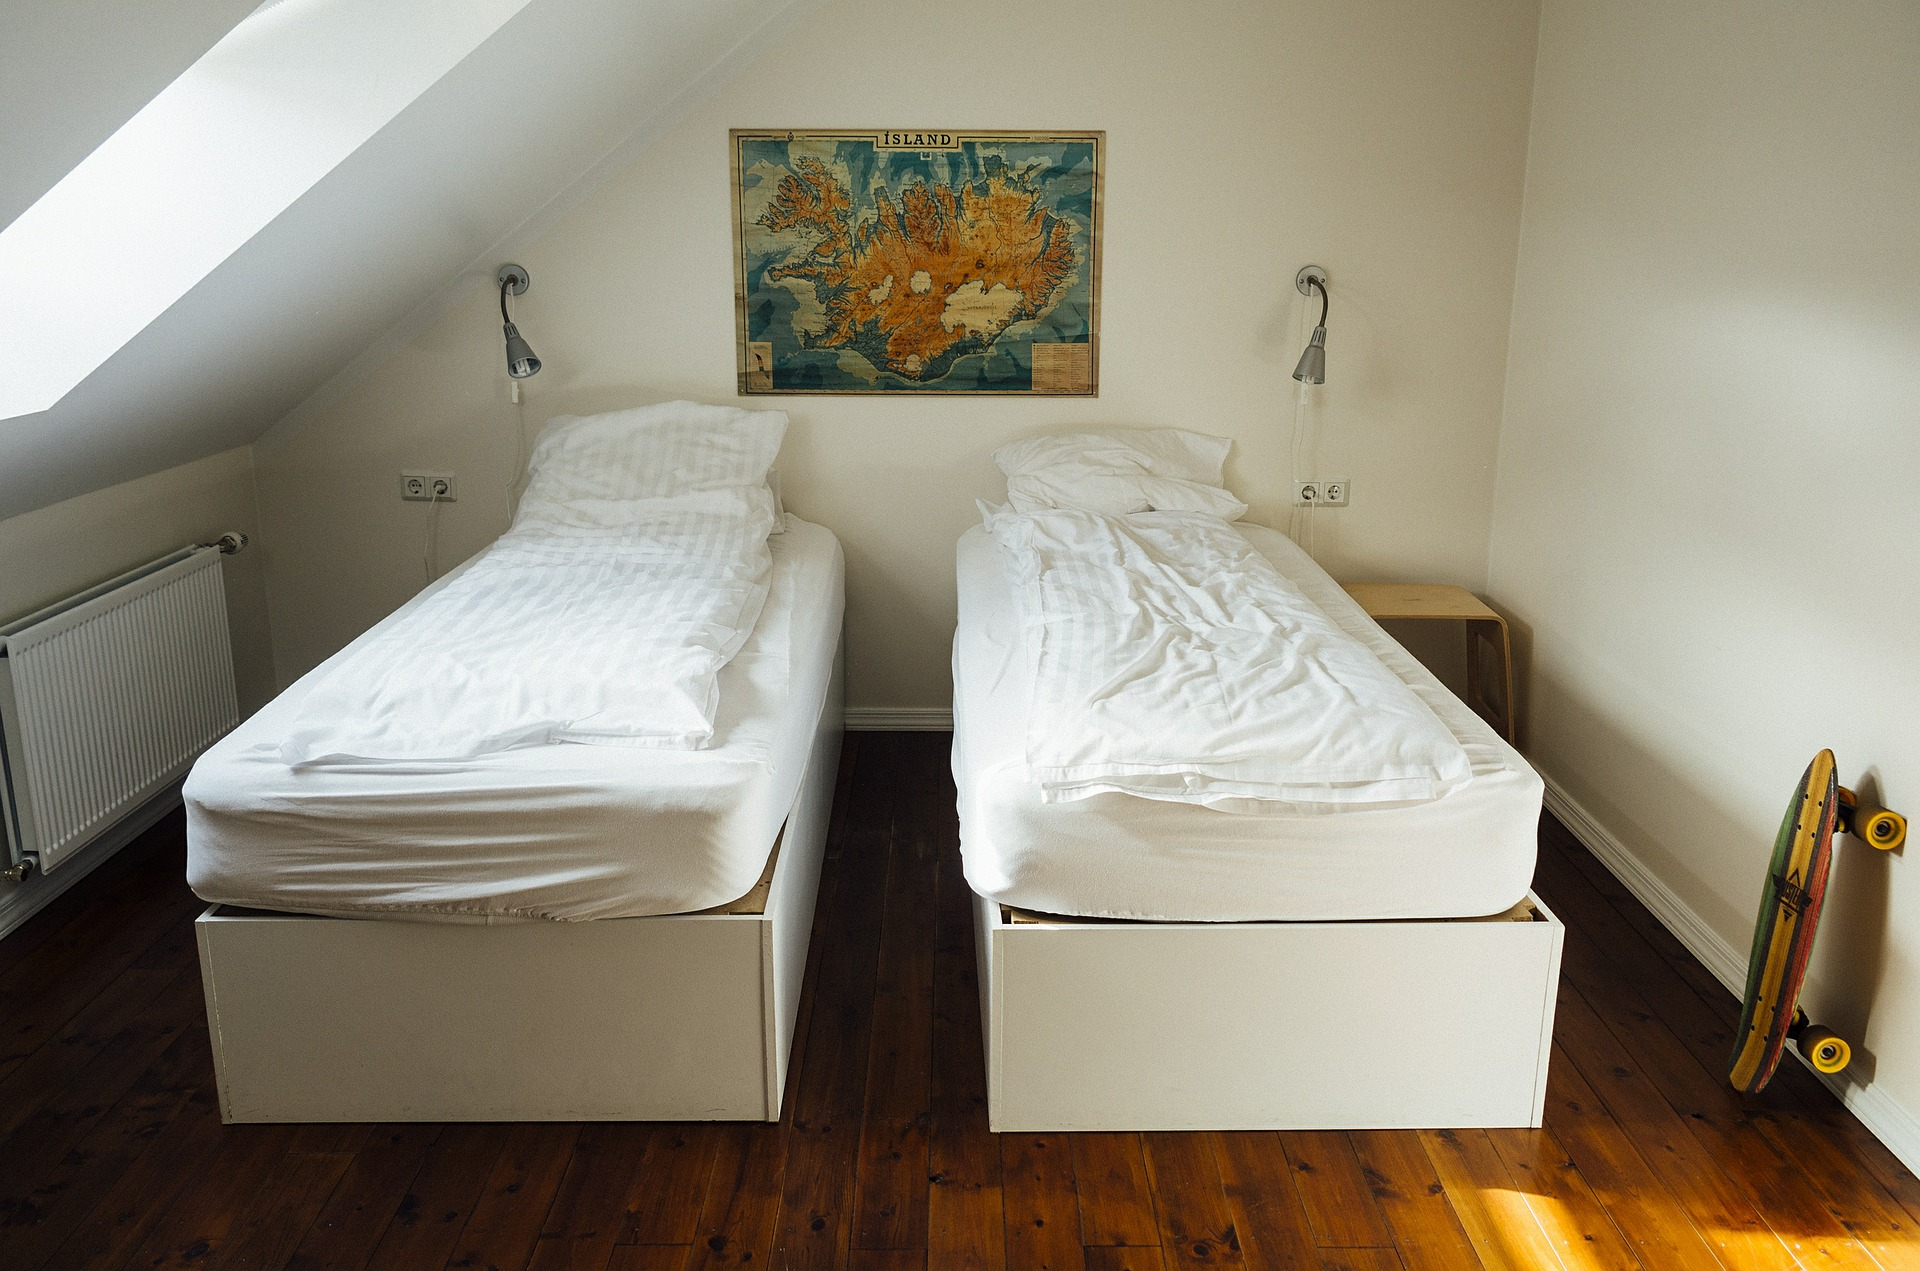 Hostel – tania alternatywa noclegu